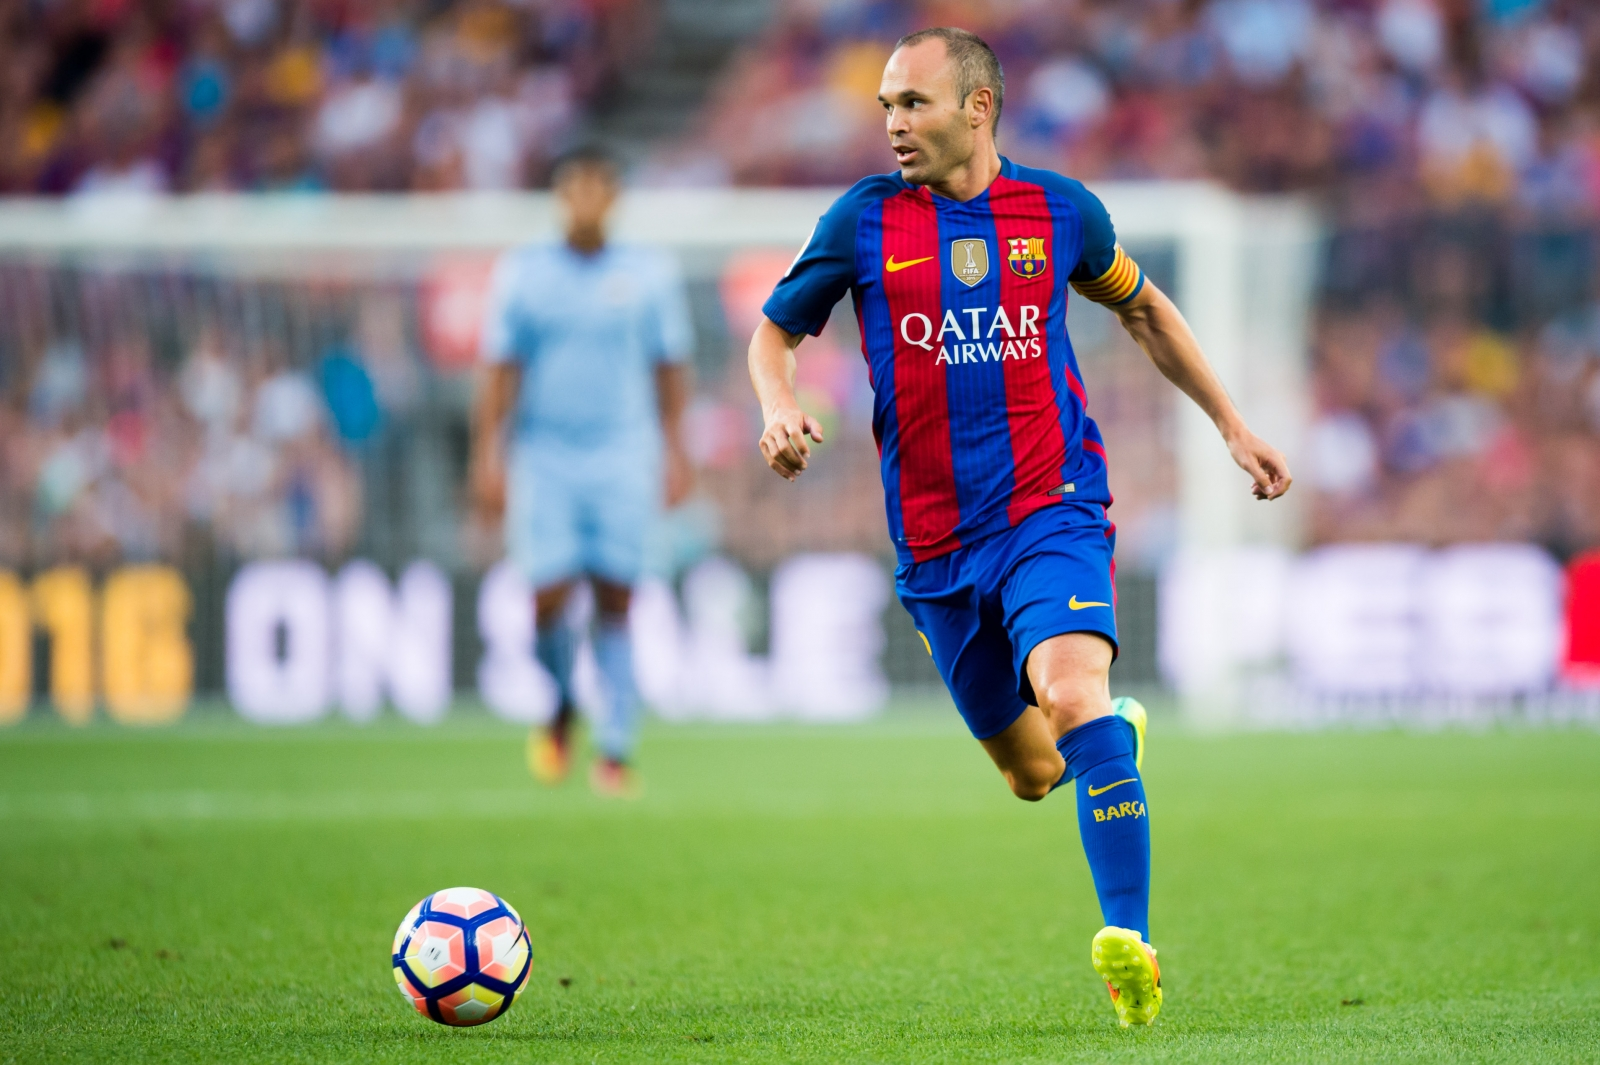 http://d.ibtimes.co.uk/en/full/1571755/andres-iniesta.jpg